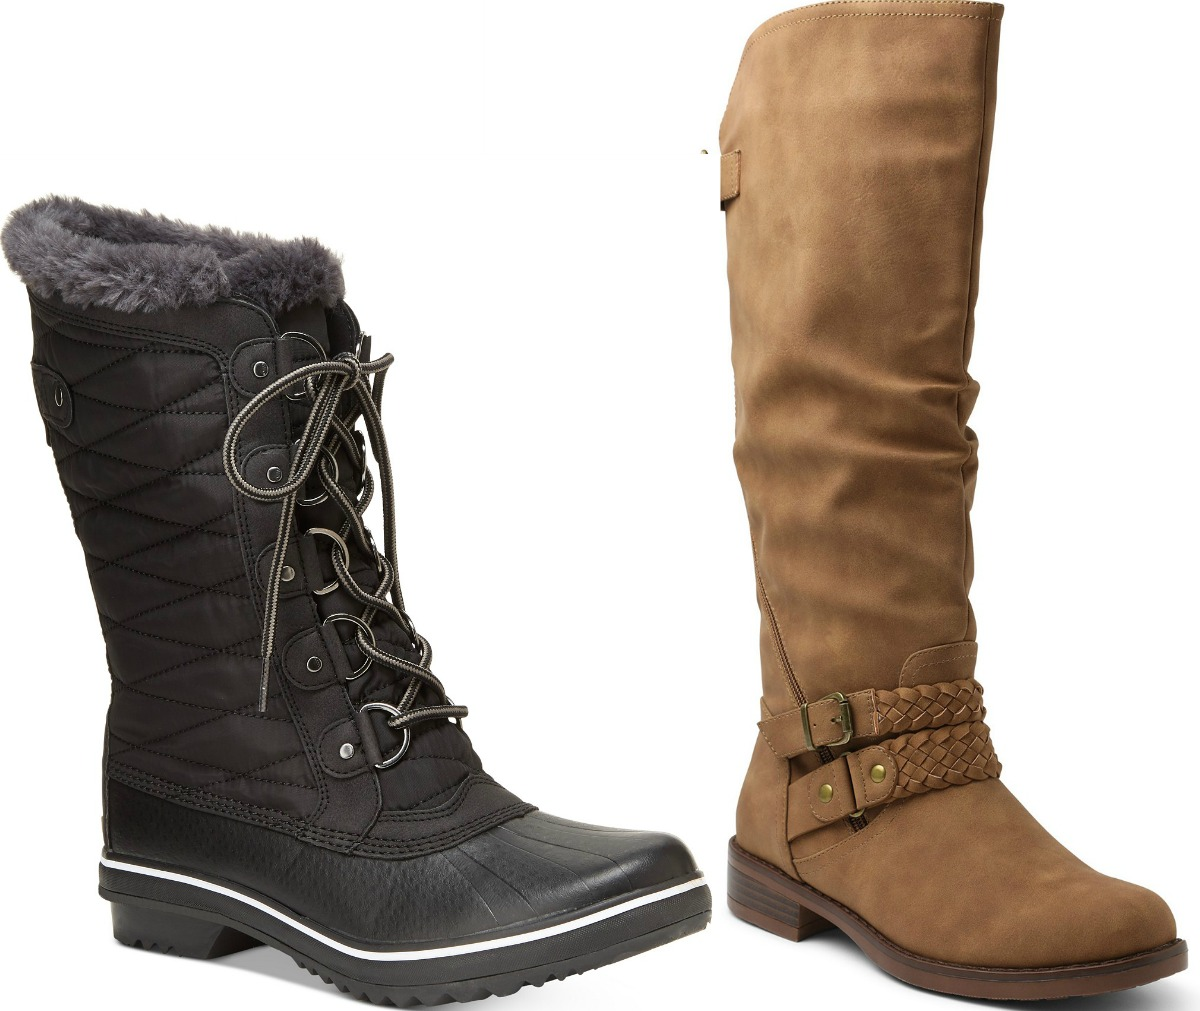 Up to 90% Off Winter Outerwear, Boots